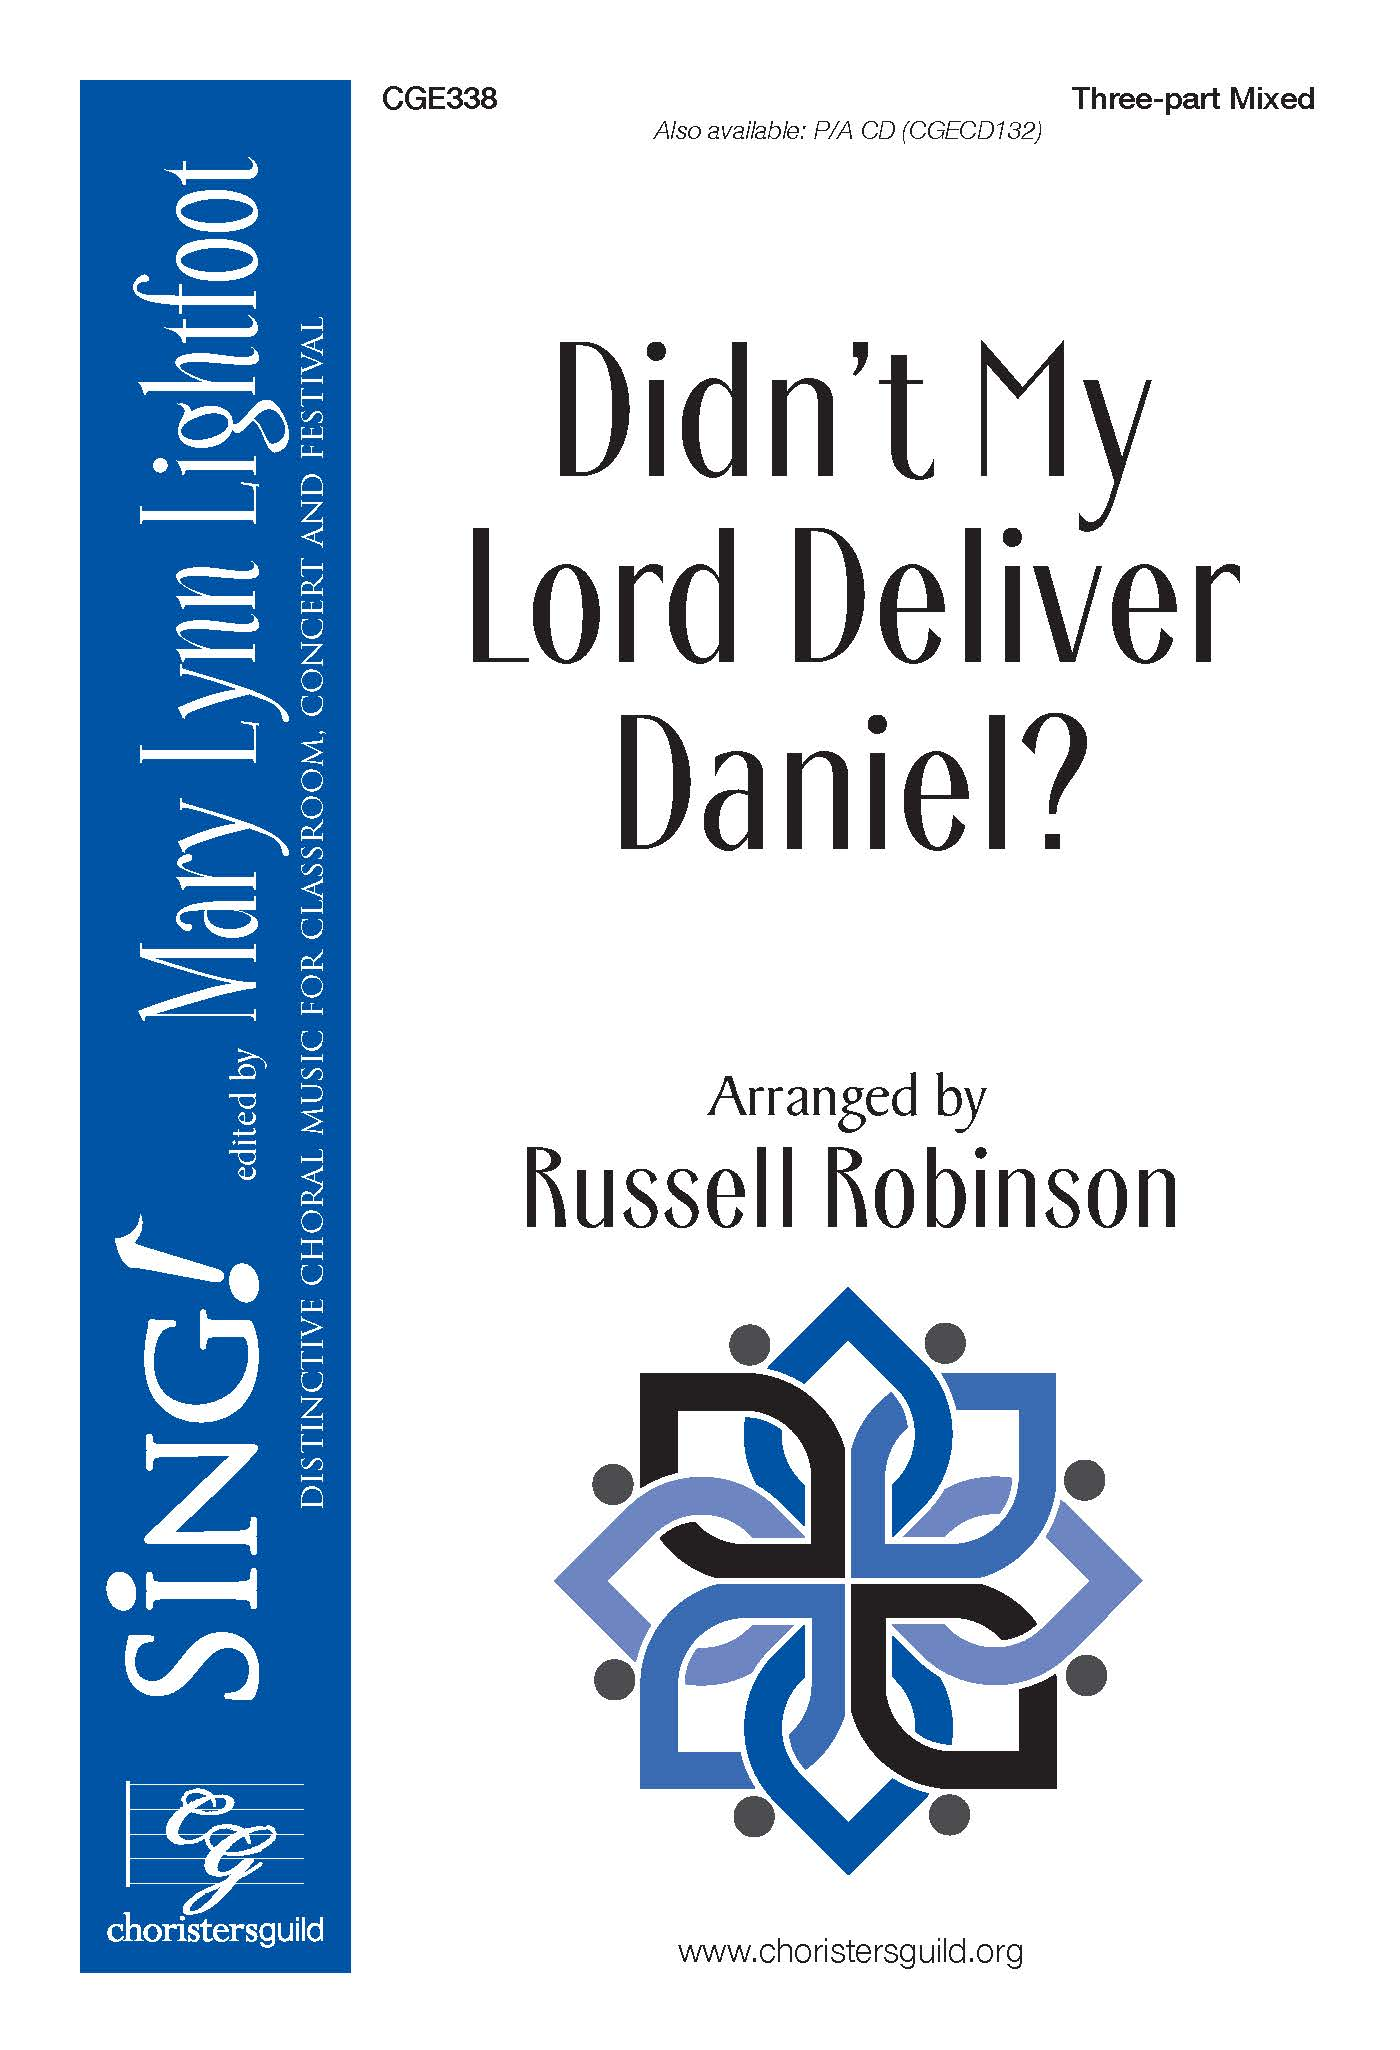 Didn't My Lord Deliver Daniel? Three-part Mixed